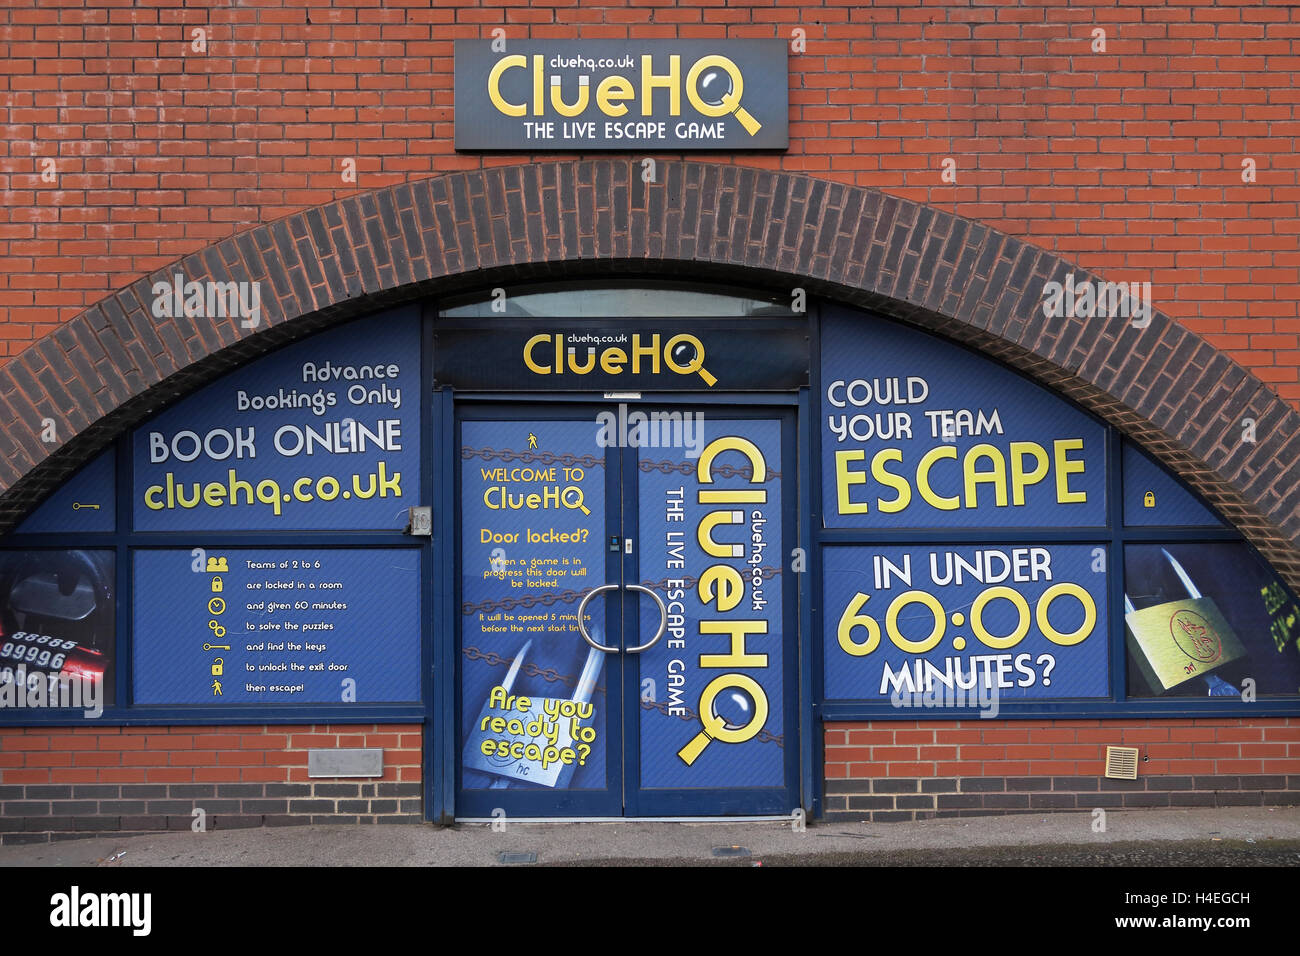 ClueHQ,The Live Escape Game,Warrington,Cheshire, England - Stock Image